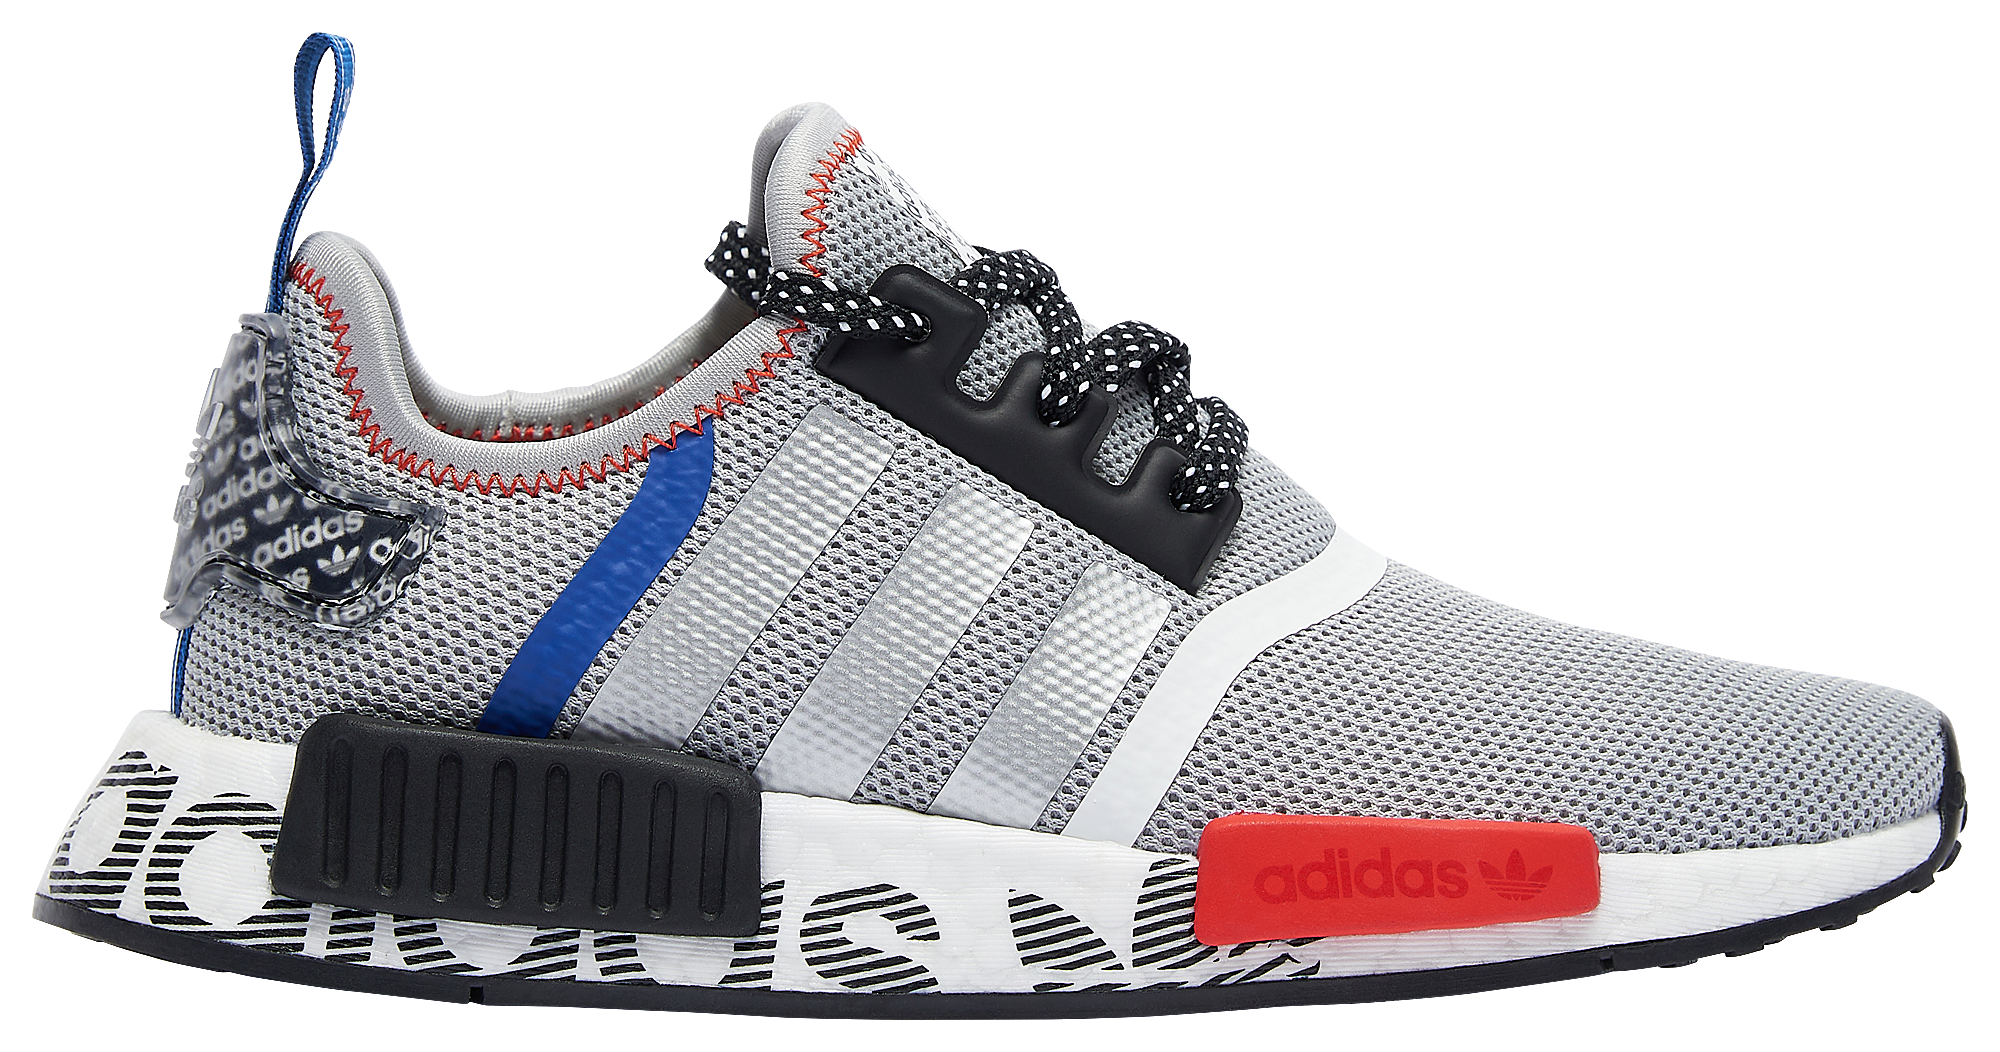 adidas nmd boys grade school Online Shopping mall | Find the best ...